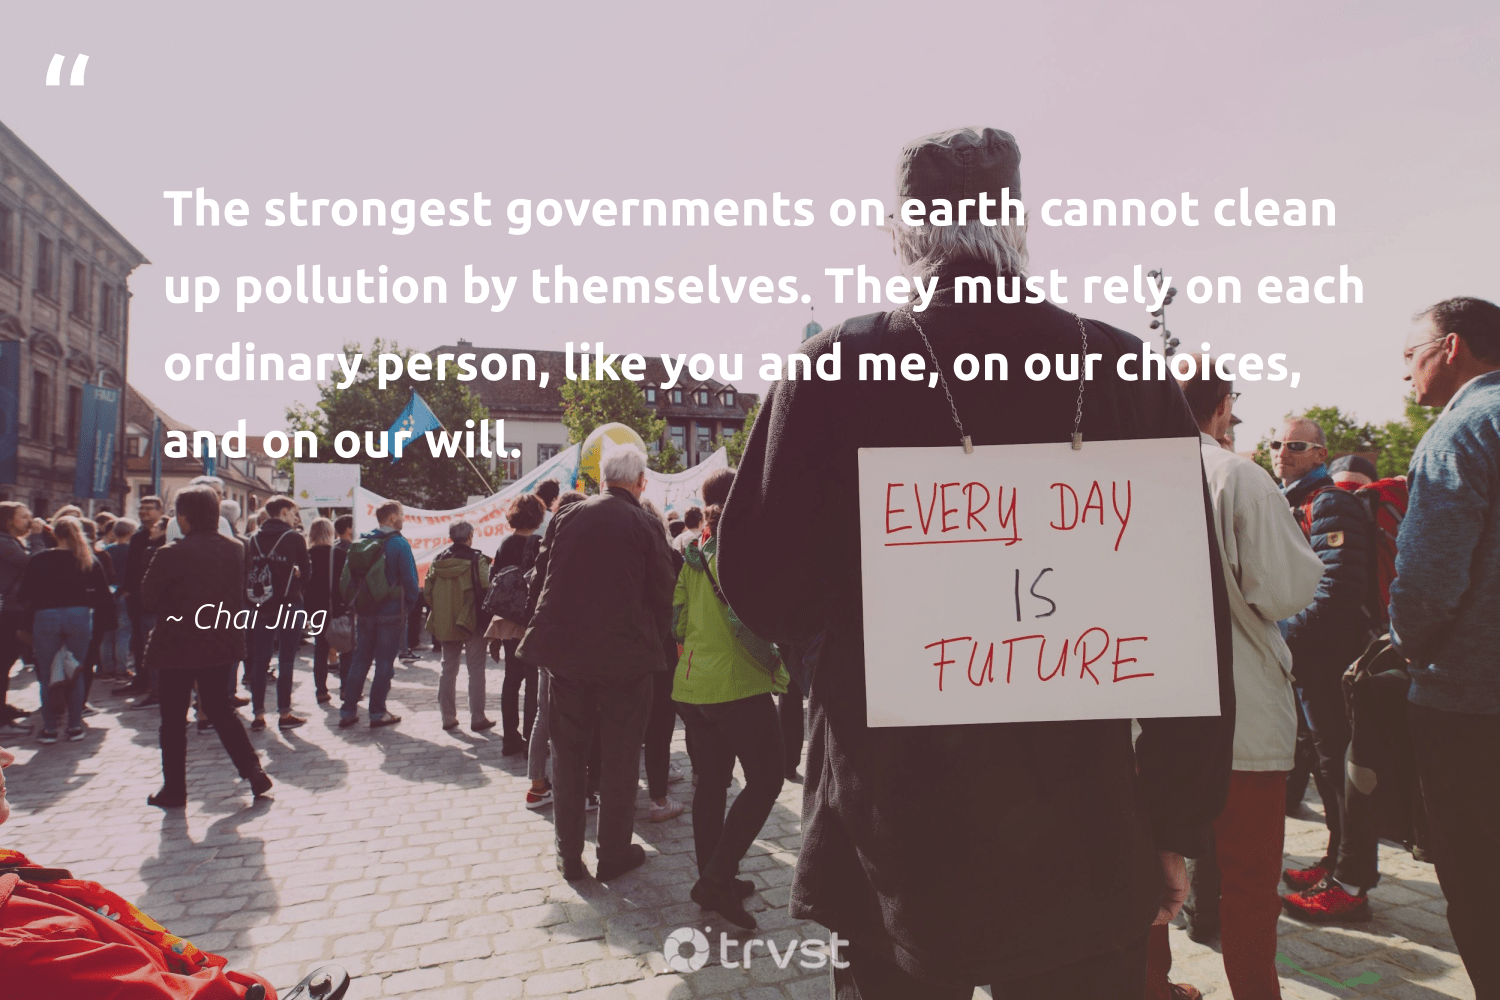 """""""The strongest governments on earth cannot clean up pollution by themselves. They must rely on each ordinary person, like you and me, on our choices, and on our will.""""  - Chai Jing #trvst #quotes #earth #pollution #planet #climateaction #green #ecoconscious #conservation #actonclimate #volunteer #socialimpact"""